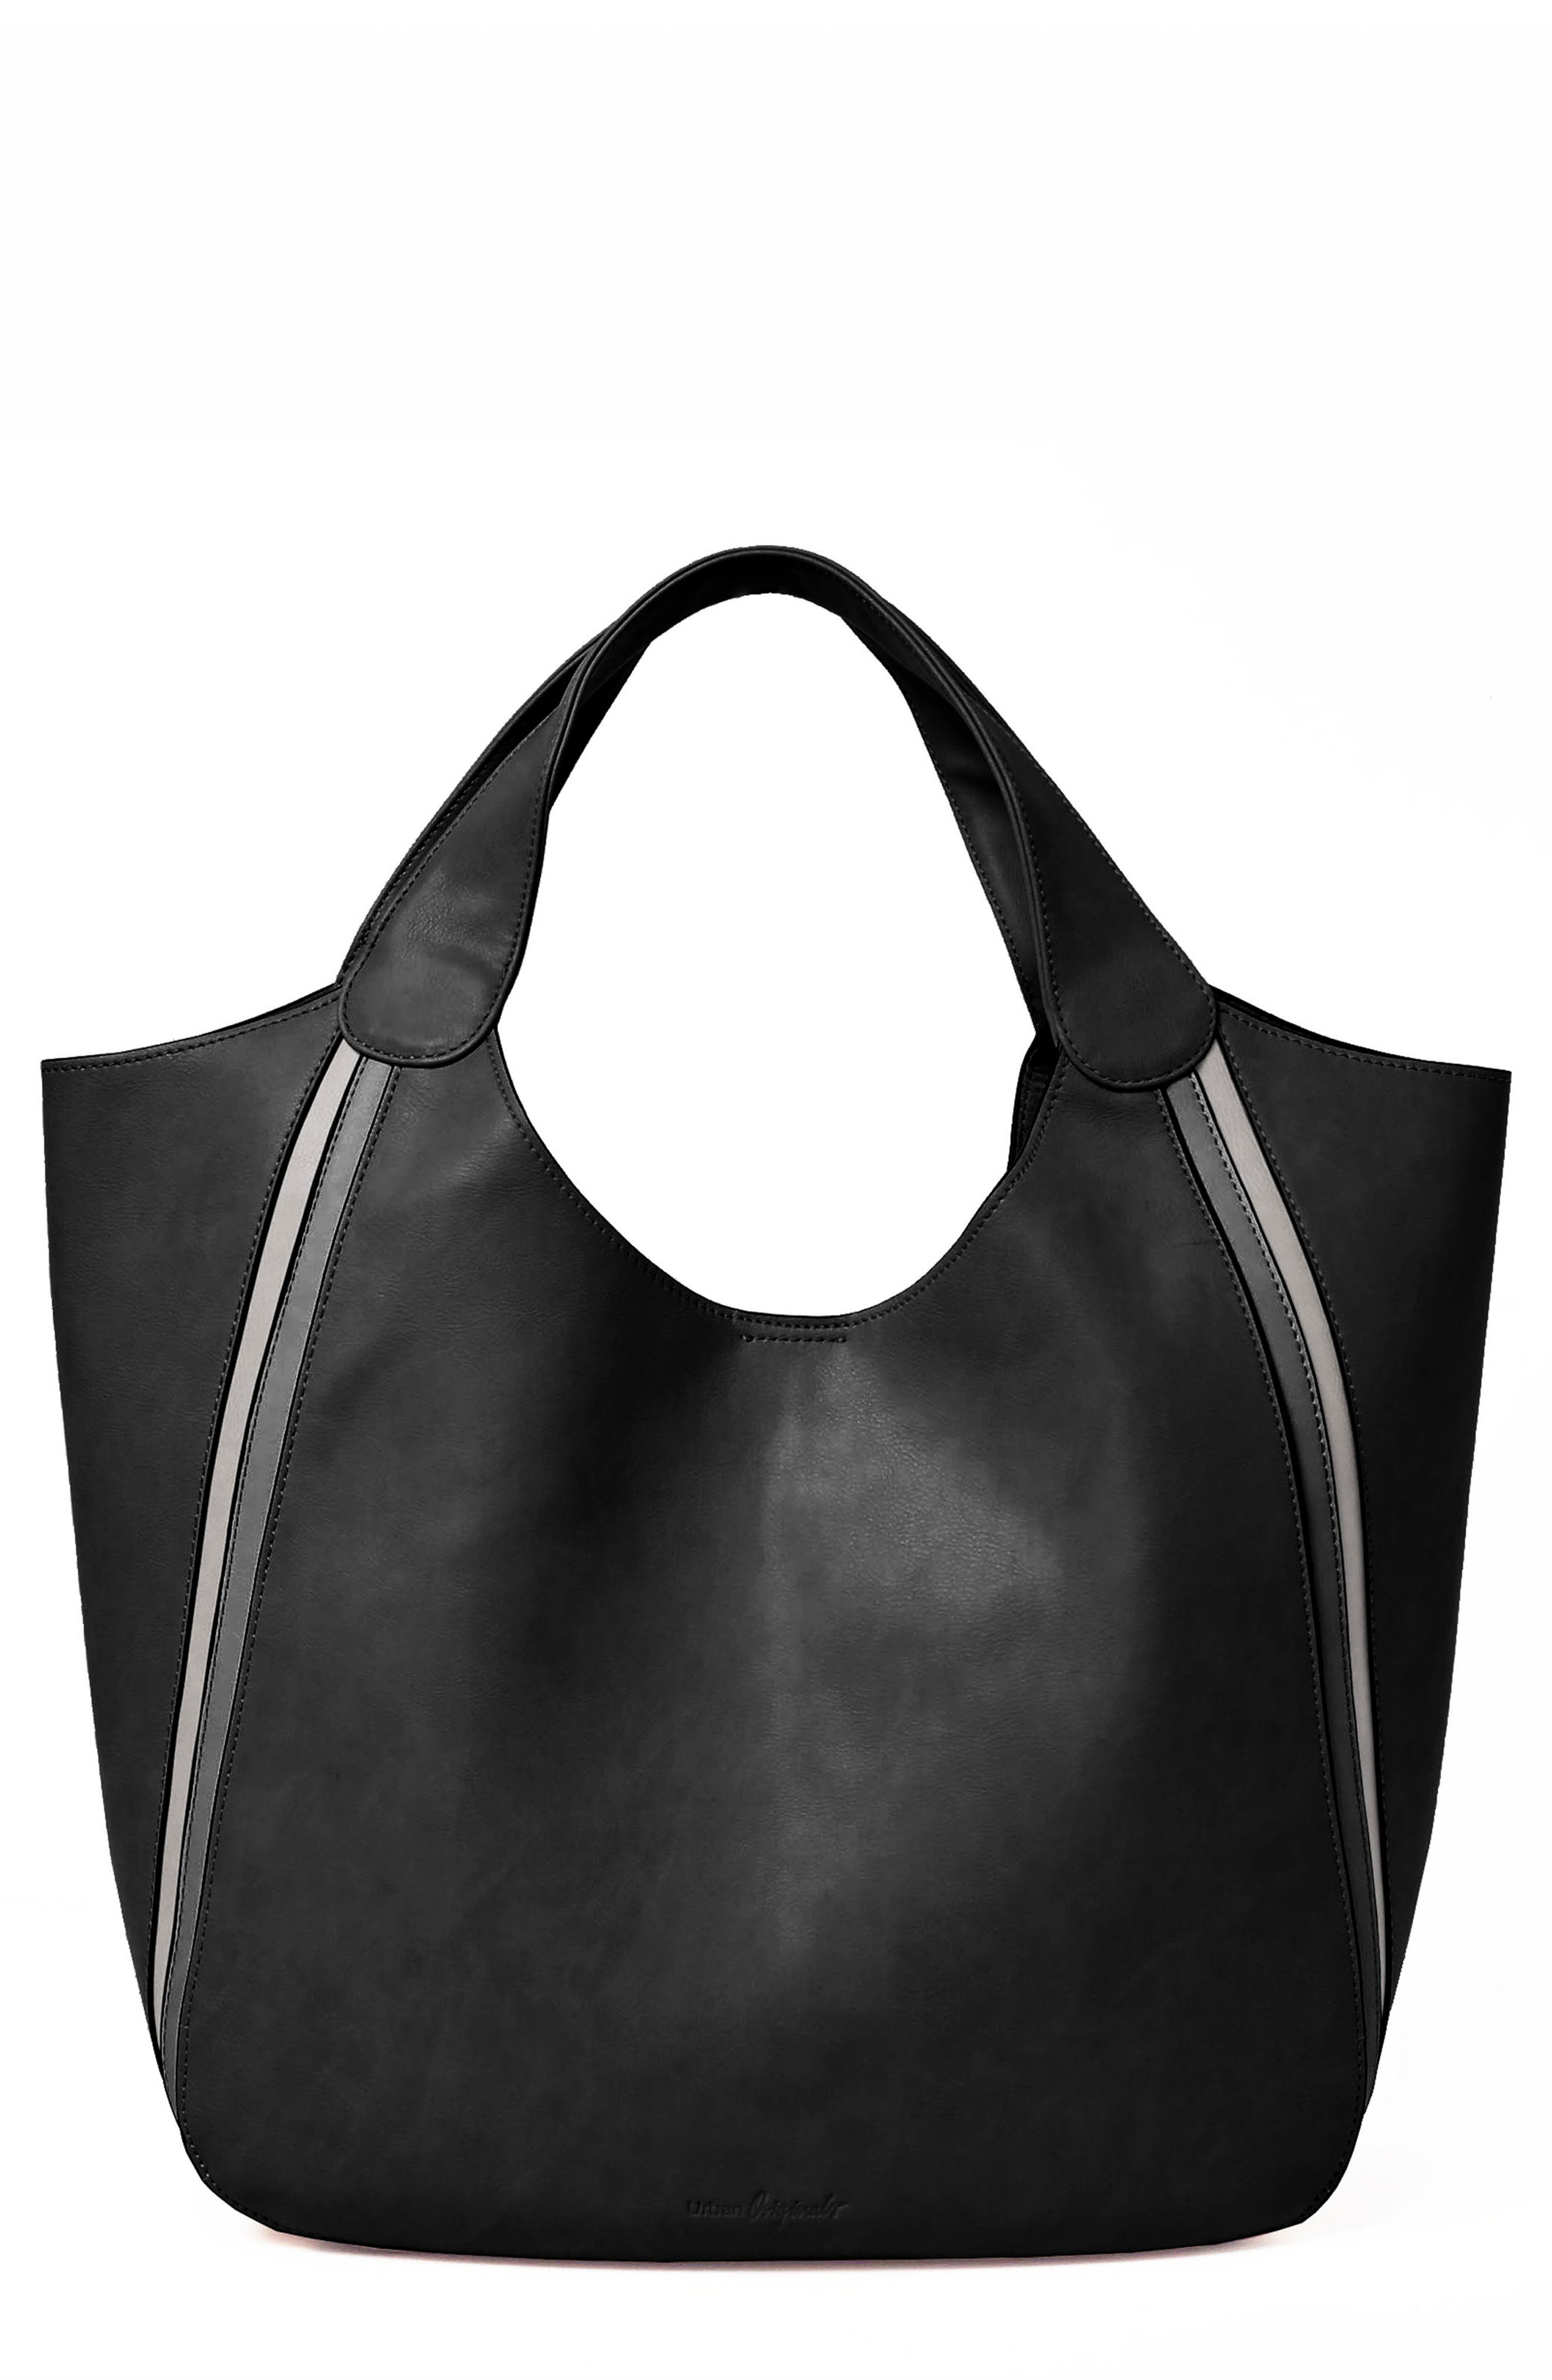 Viva Vegan Leather Tote with Removable Zip Pouch,                             Main thumbnail 1, color,                             BLACK